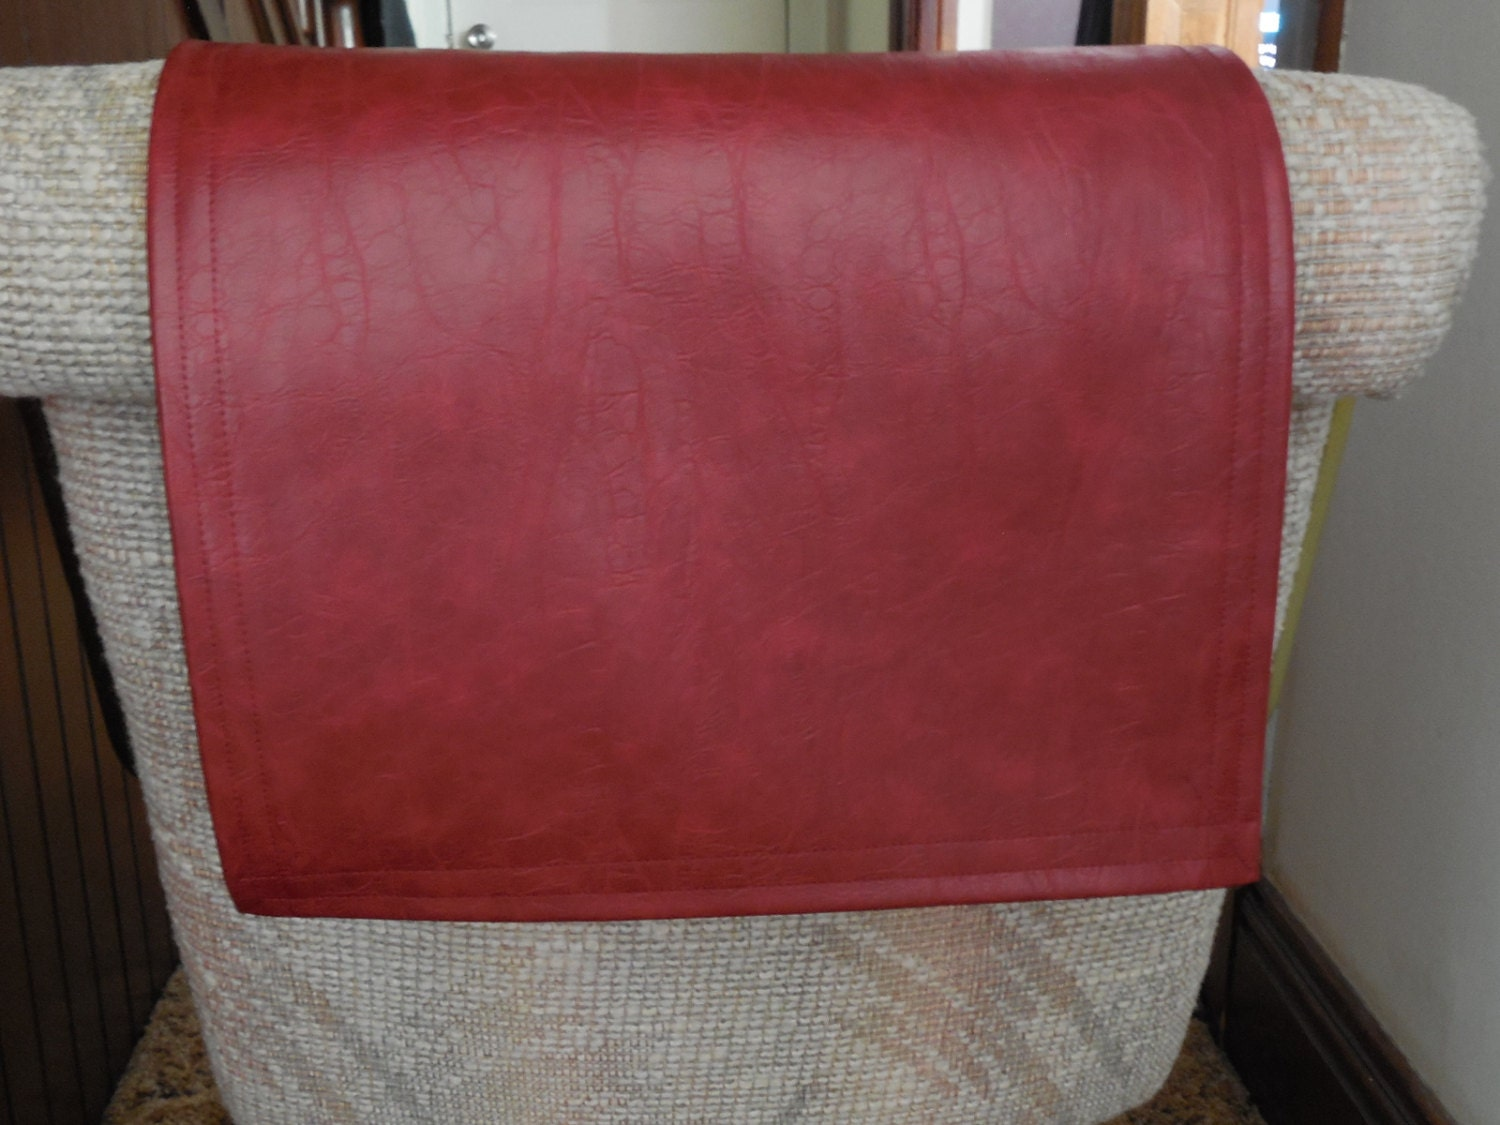 Furniture Protector Upholstery Vinyl SF RED 14x30 Sofa : ilfullxfull9789371324dnu from www.etsy.com size 1500 x 1125 jpeg 294kB